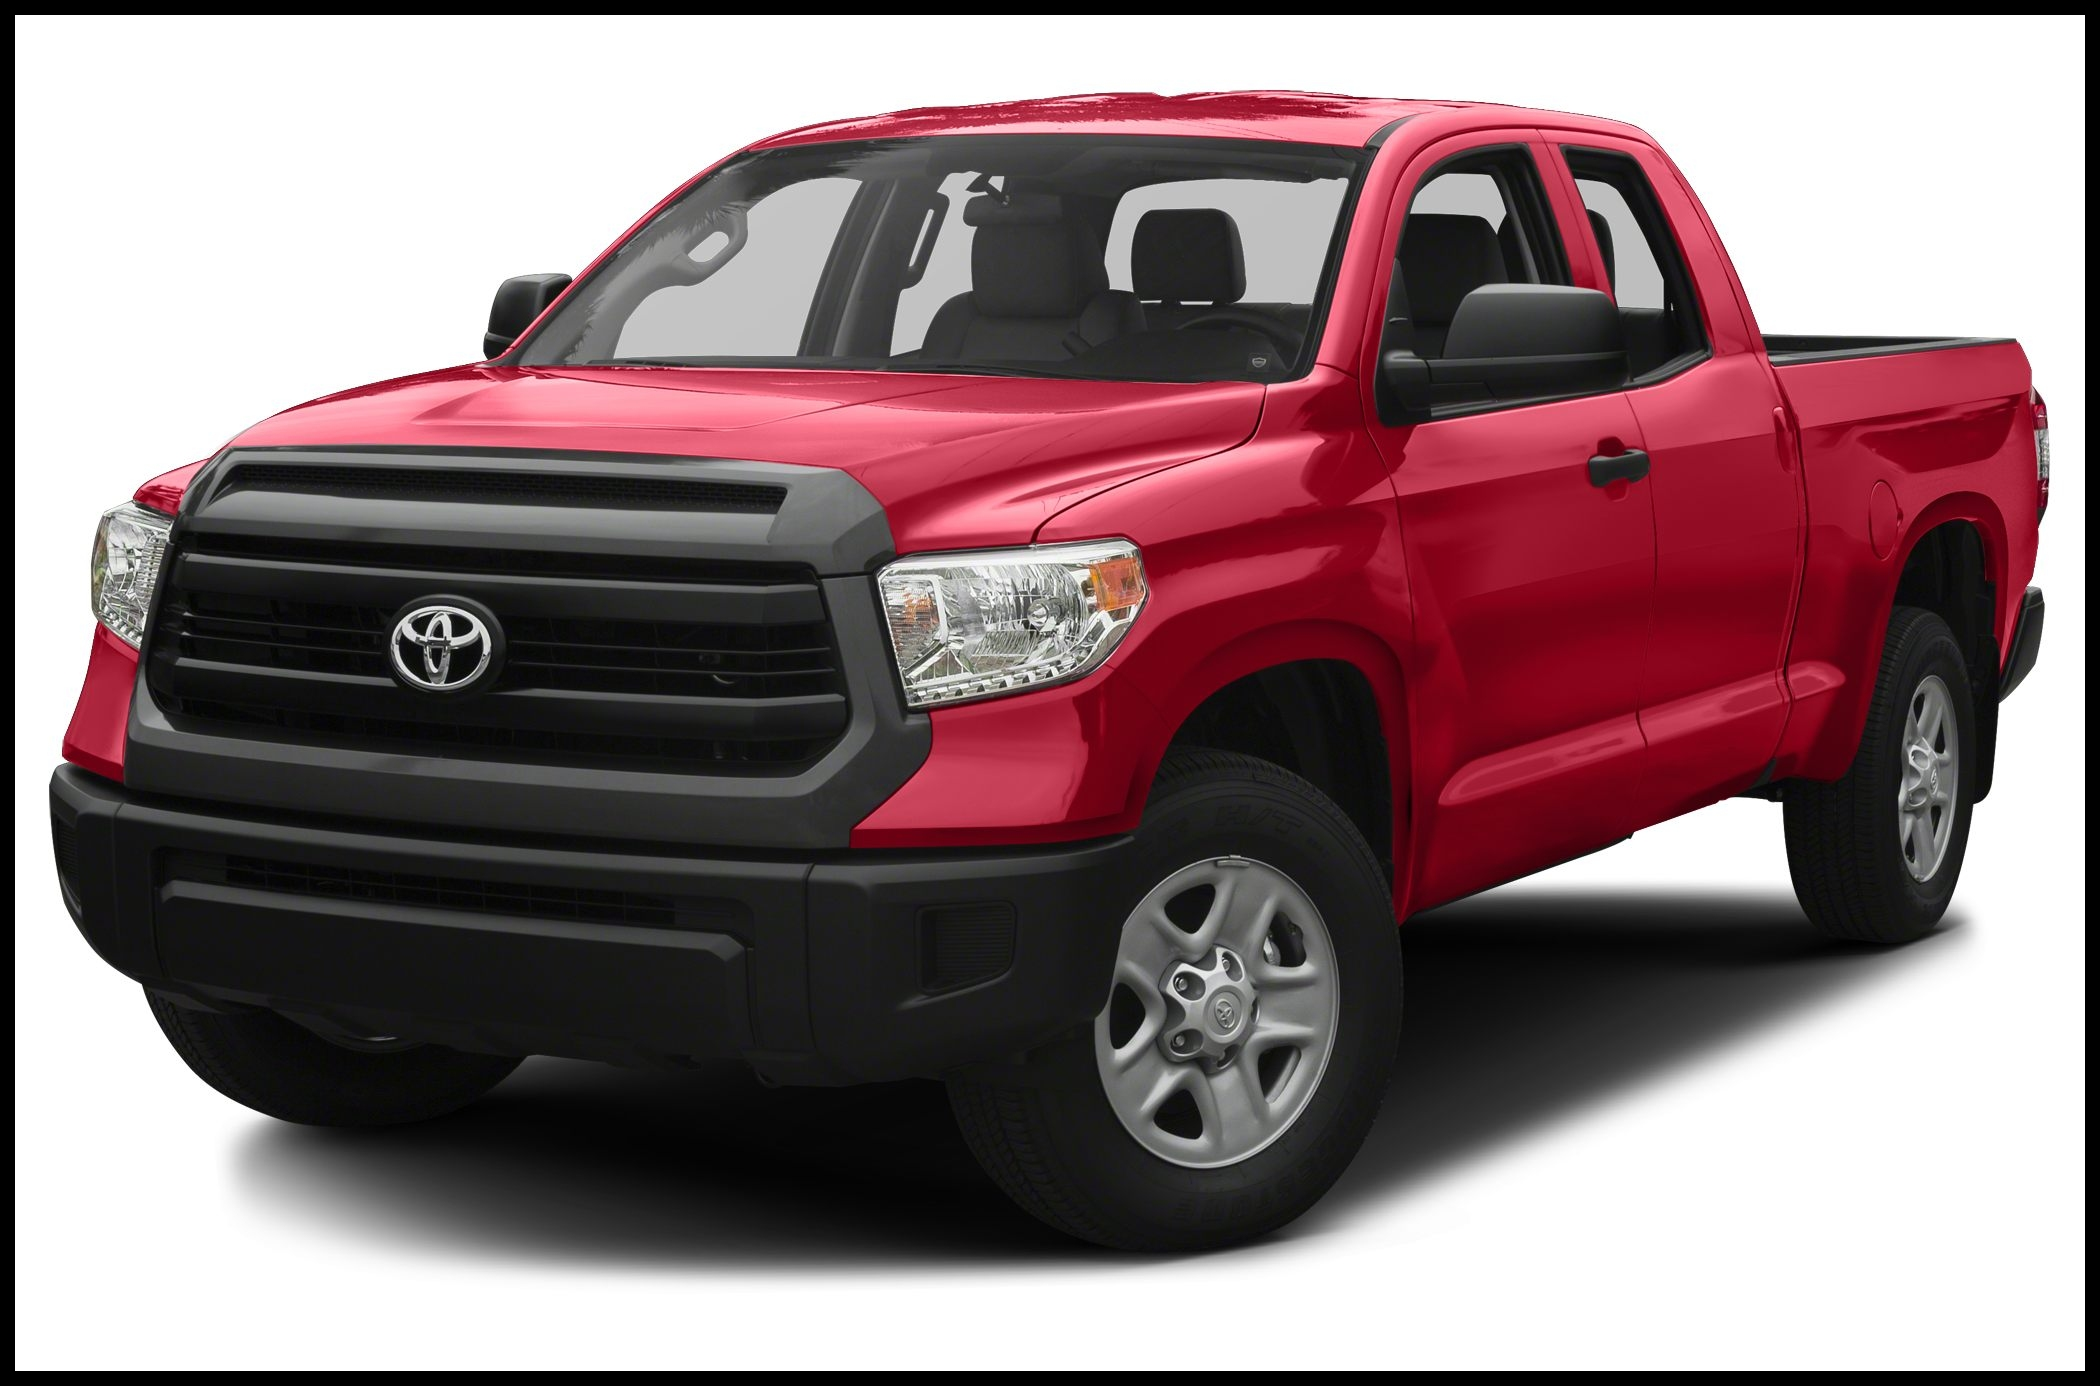 2014 Toyota Tundra SR 5 7L V8 4x4 Double Cab Long Bed 8 ft box 164 6 in WB Pricing and Options